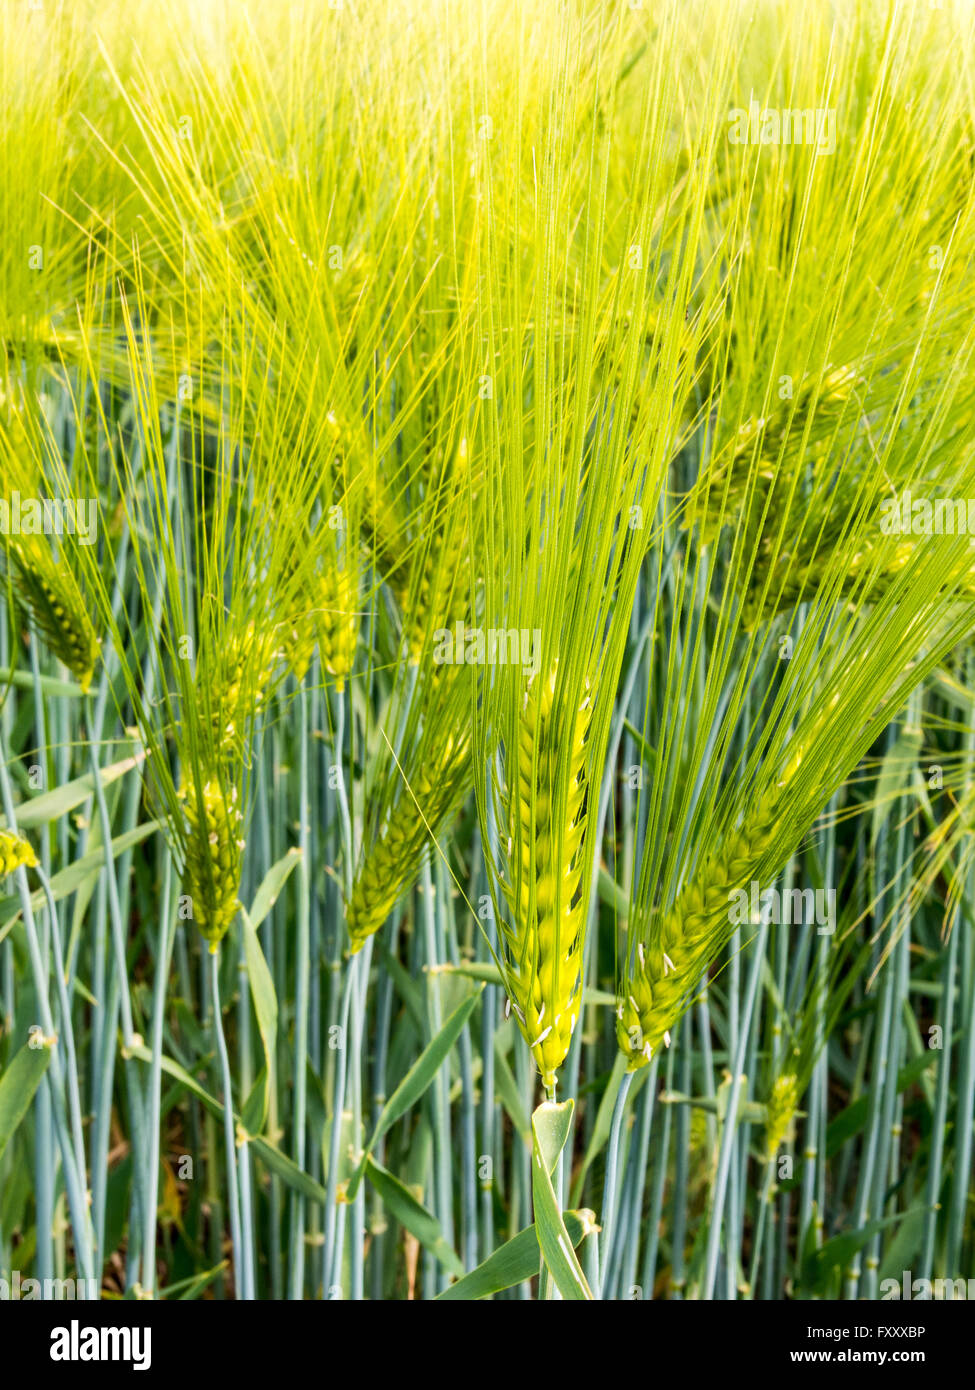 Barley Ear With Awns On A Field